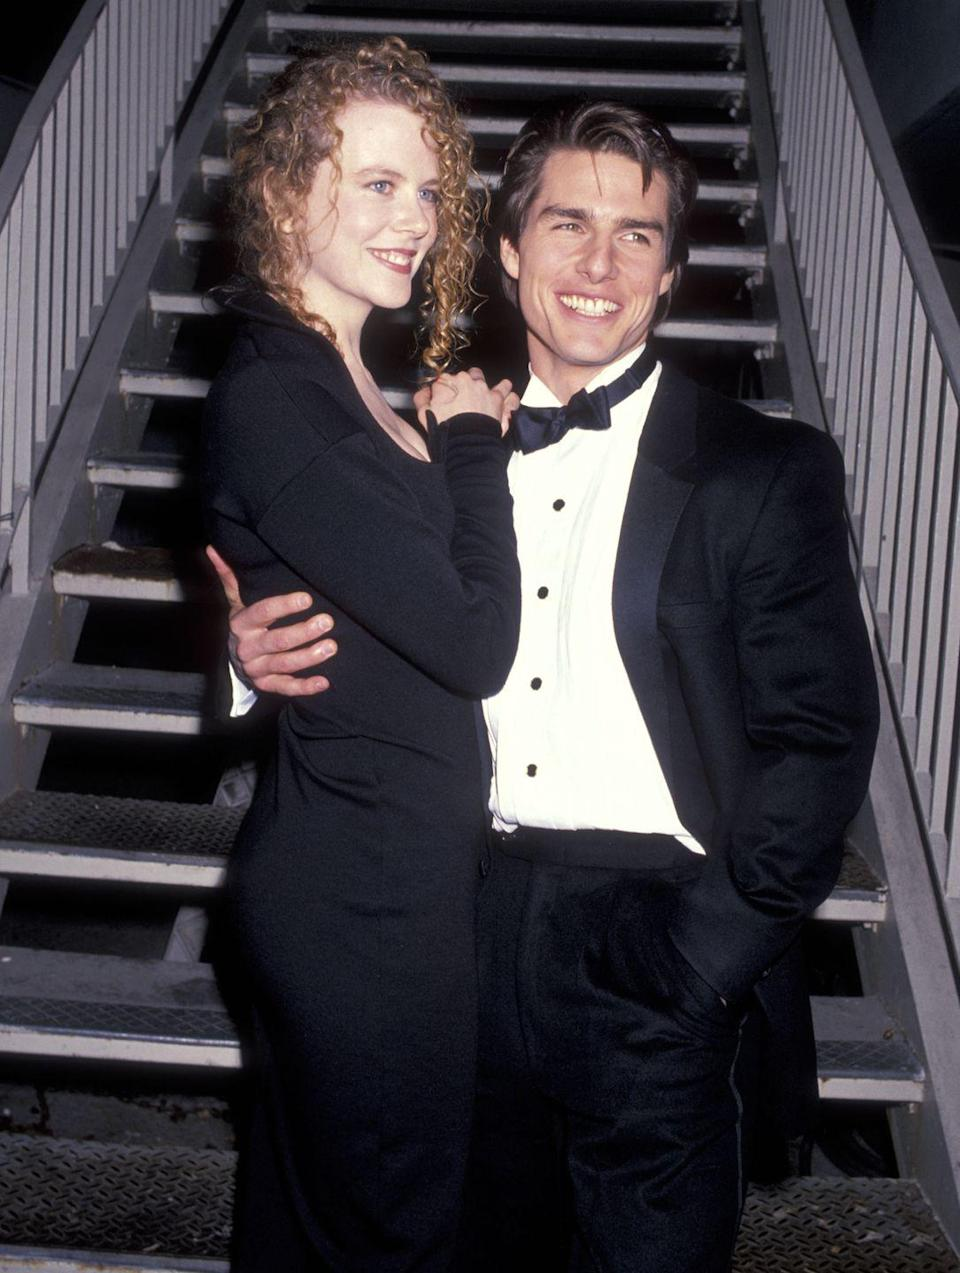 """<p>Kidman was married to Cruise in the '90s. Despite going their separate ways in 2001, Kidman told <em>Ladies' Home Journal</em> in 2006 (according to <em><a href=""""https://www.chicagotribune.com/news/ct-xpm-2006-05-09-0605090022-story.html"""" rel=""""nofollow noopener"""" target=""""_blank"""" data-ylk=""""slk:Chicago Tribune"""" class=""""link rapid-noclick-resp"""">Chicago Tribune</a></em>), """"...he was lovely to me and I loved him. I still love him.""""</p>"""